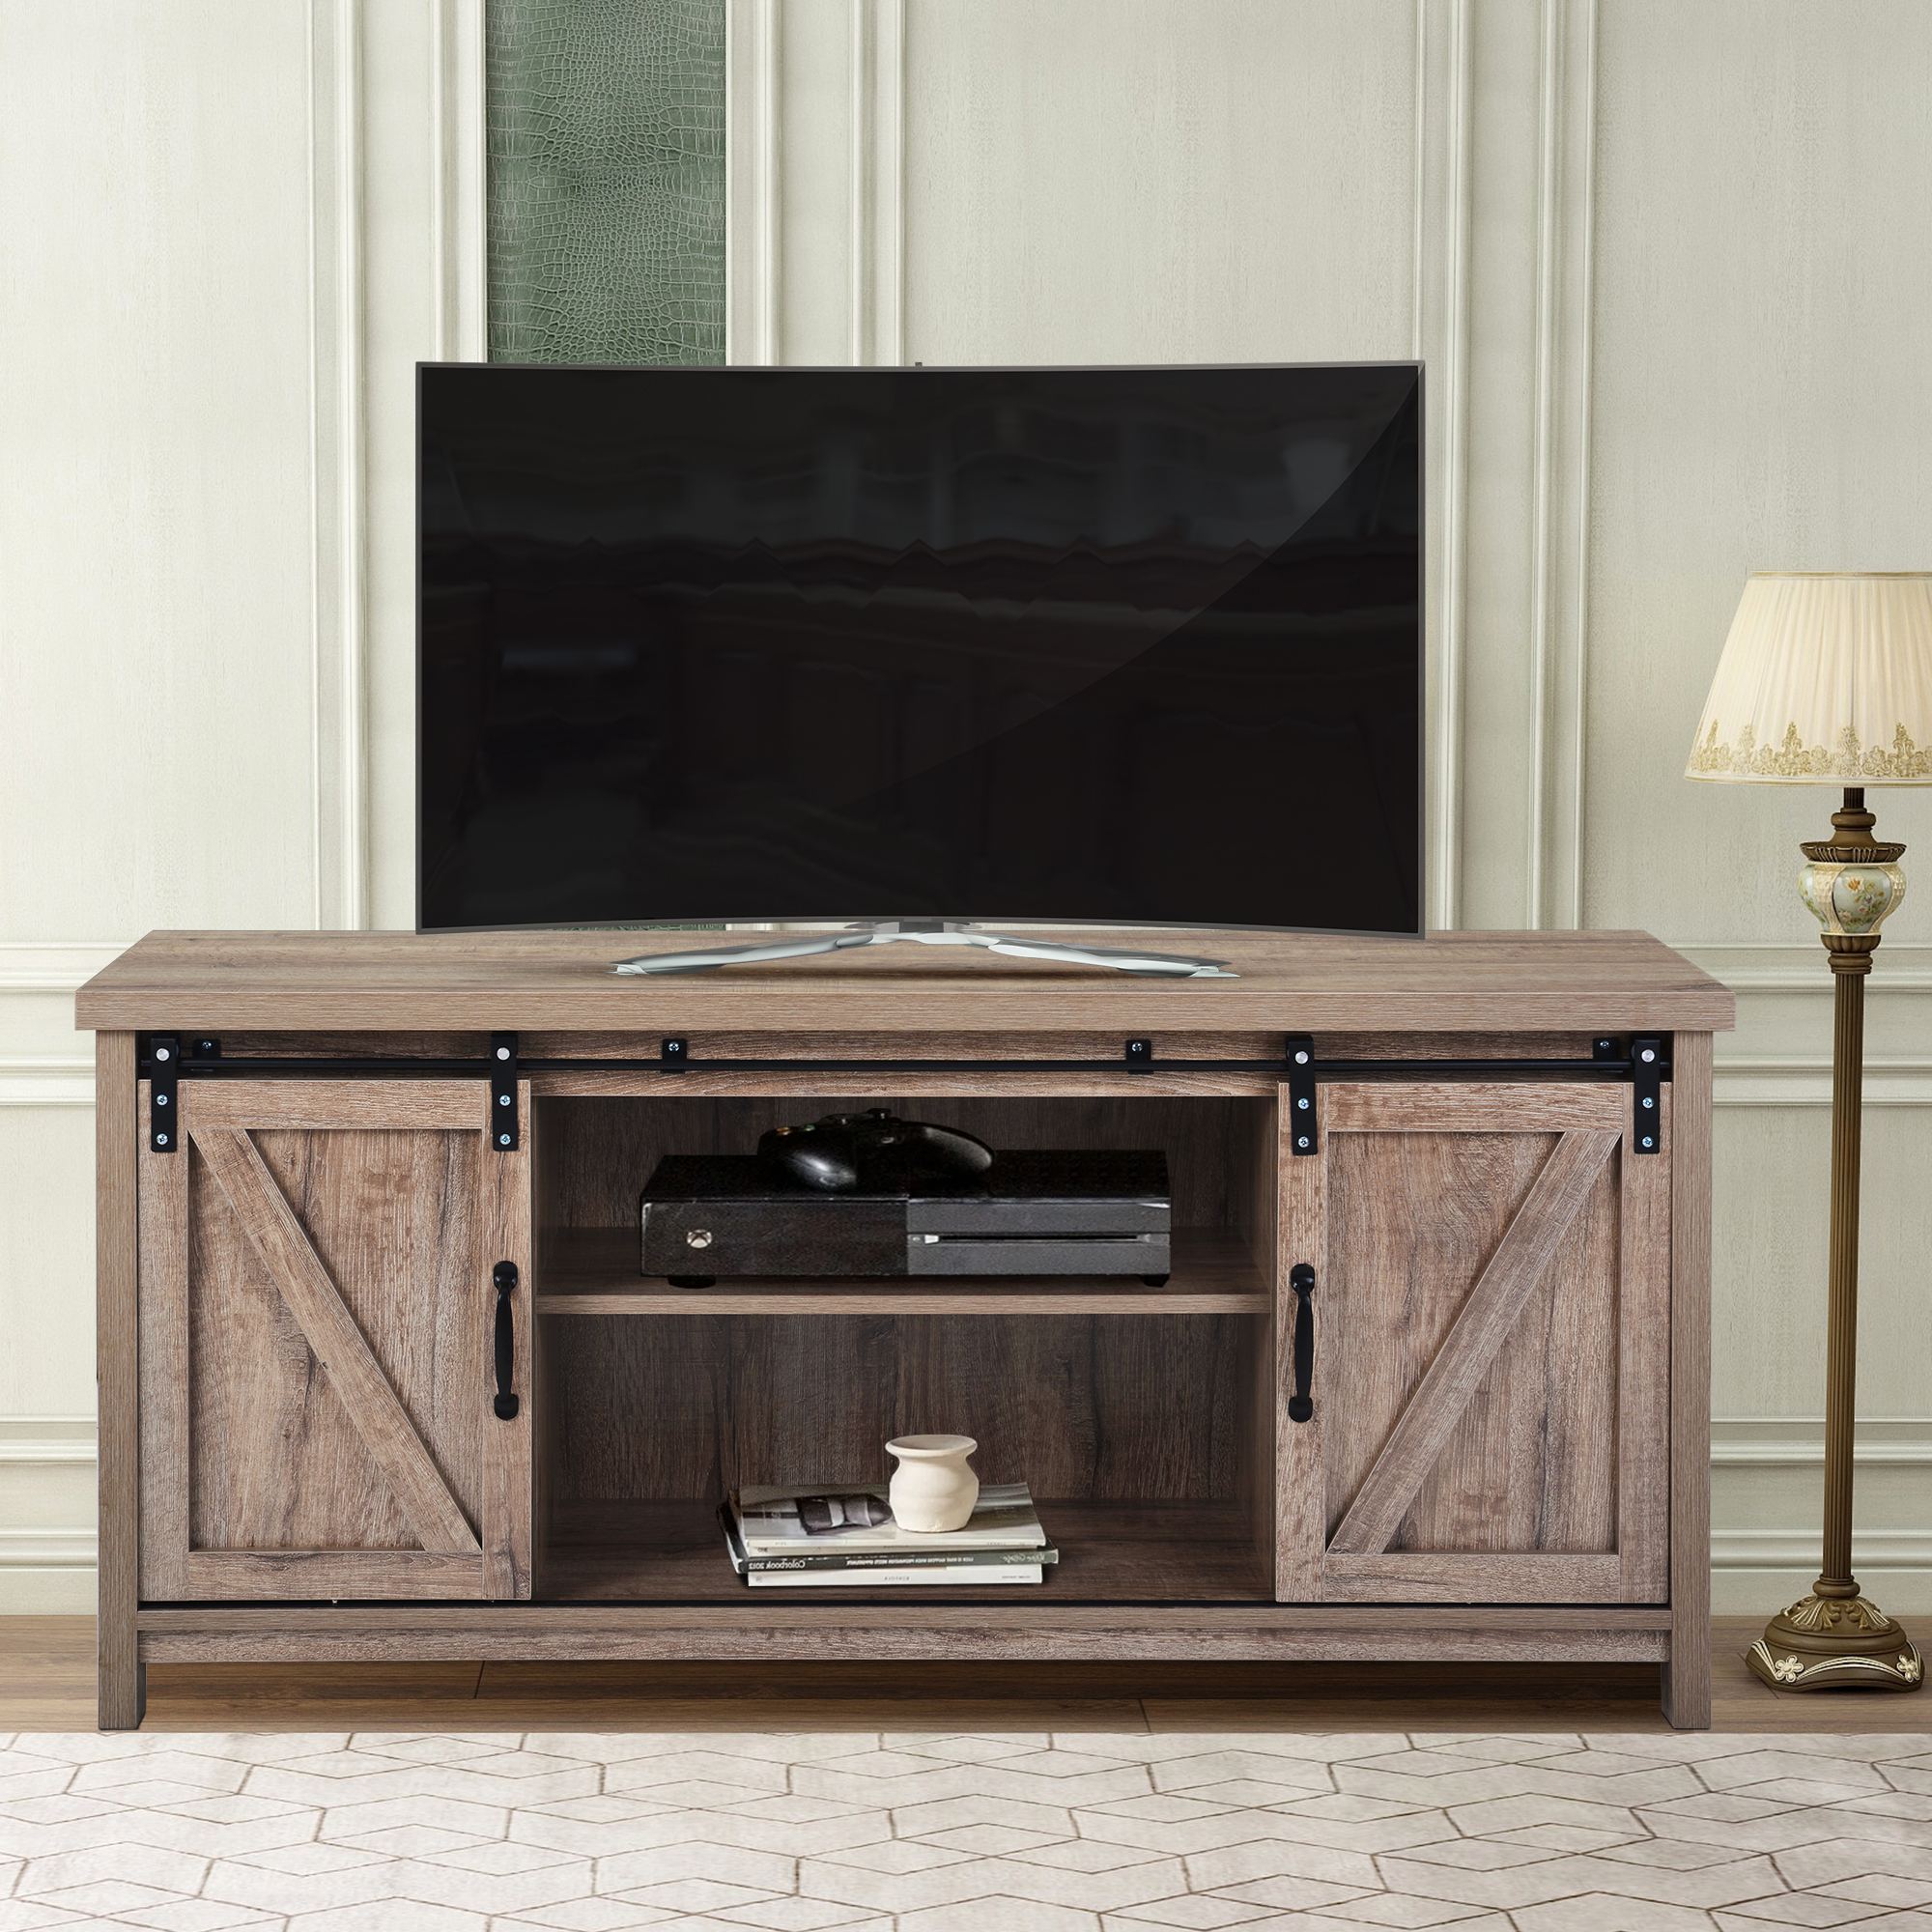 Wood Tv Stand, Modern Corner Tv Table Stands, Rustic Style Pertaining To Best And Newest Dark Brown Tv Cabinets With 2 Sliding Doors And Drawer (View 1 of 10)